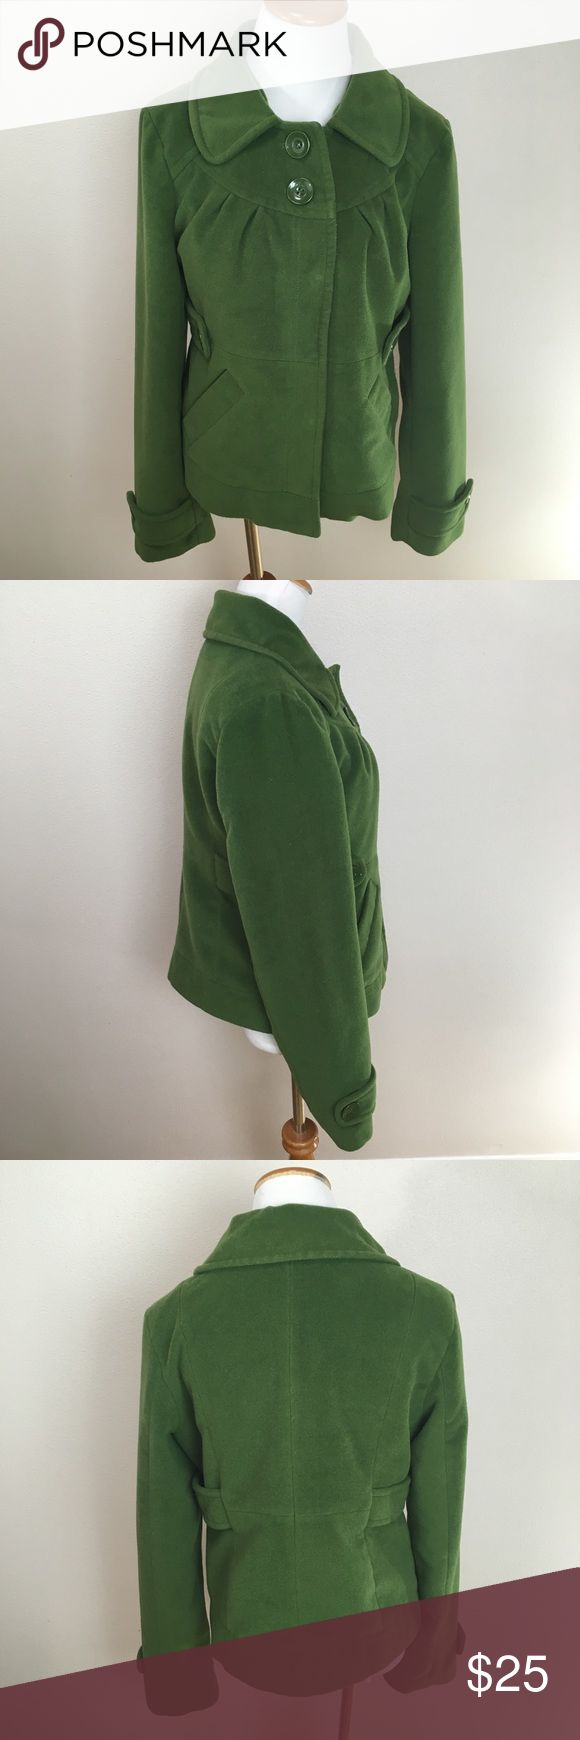 TULLE  Anthro Green Jacket Short Coat Size Large TULLE Anthropologie Green Jacket Short Coat Size Large. Good condition! Missing detachable hood. Clean And Comes From smoke free home. Questions welcomed. Anthropologie Jackets & Coats